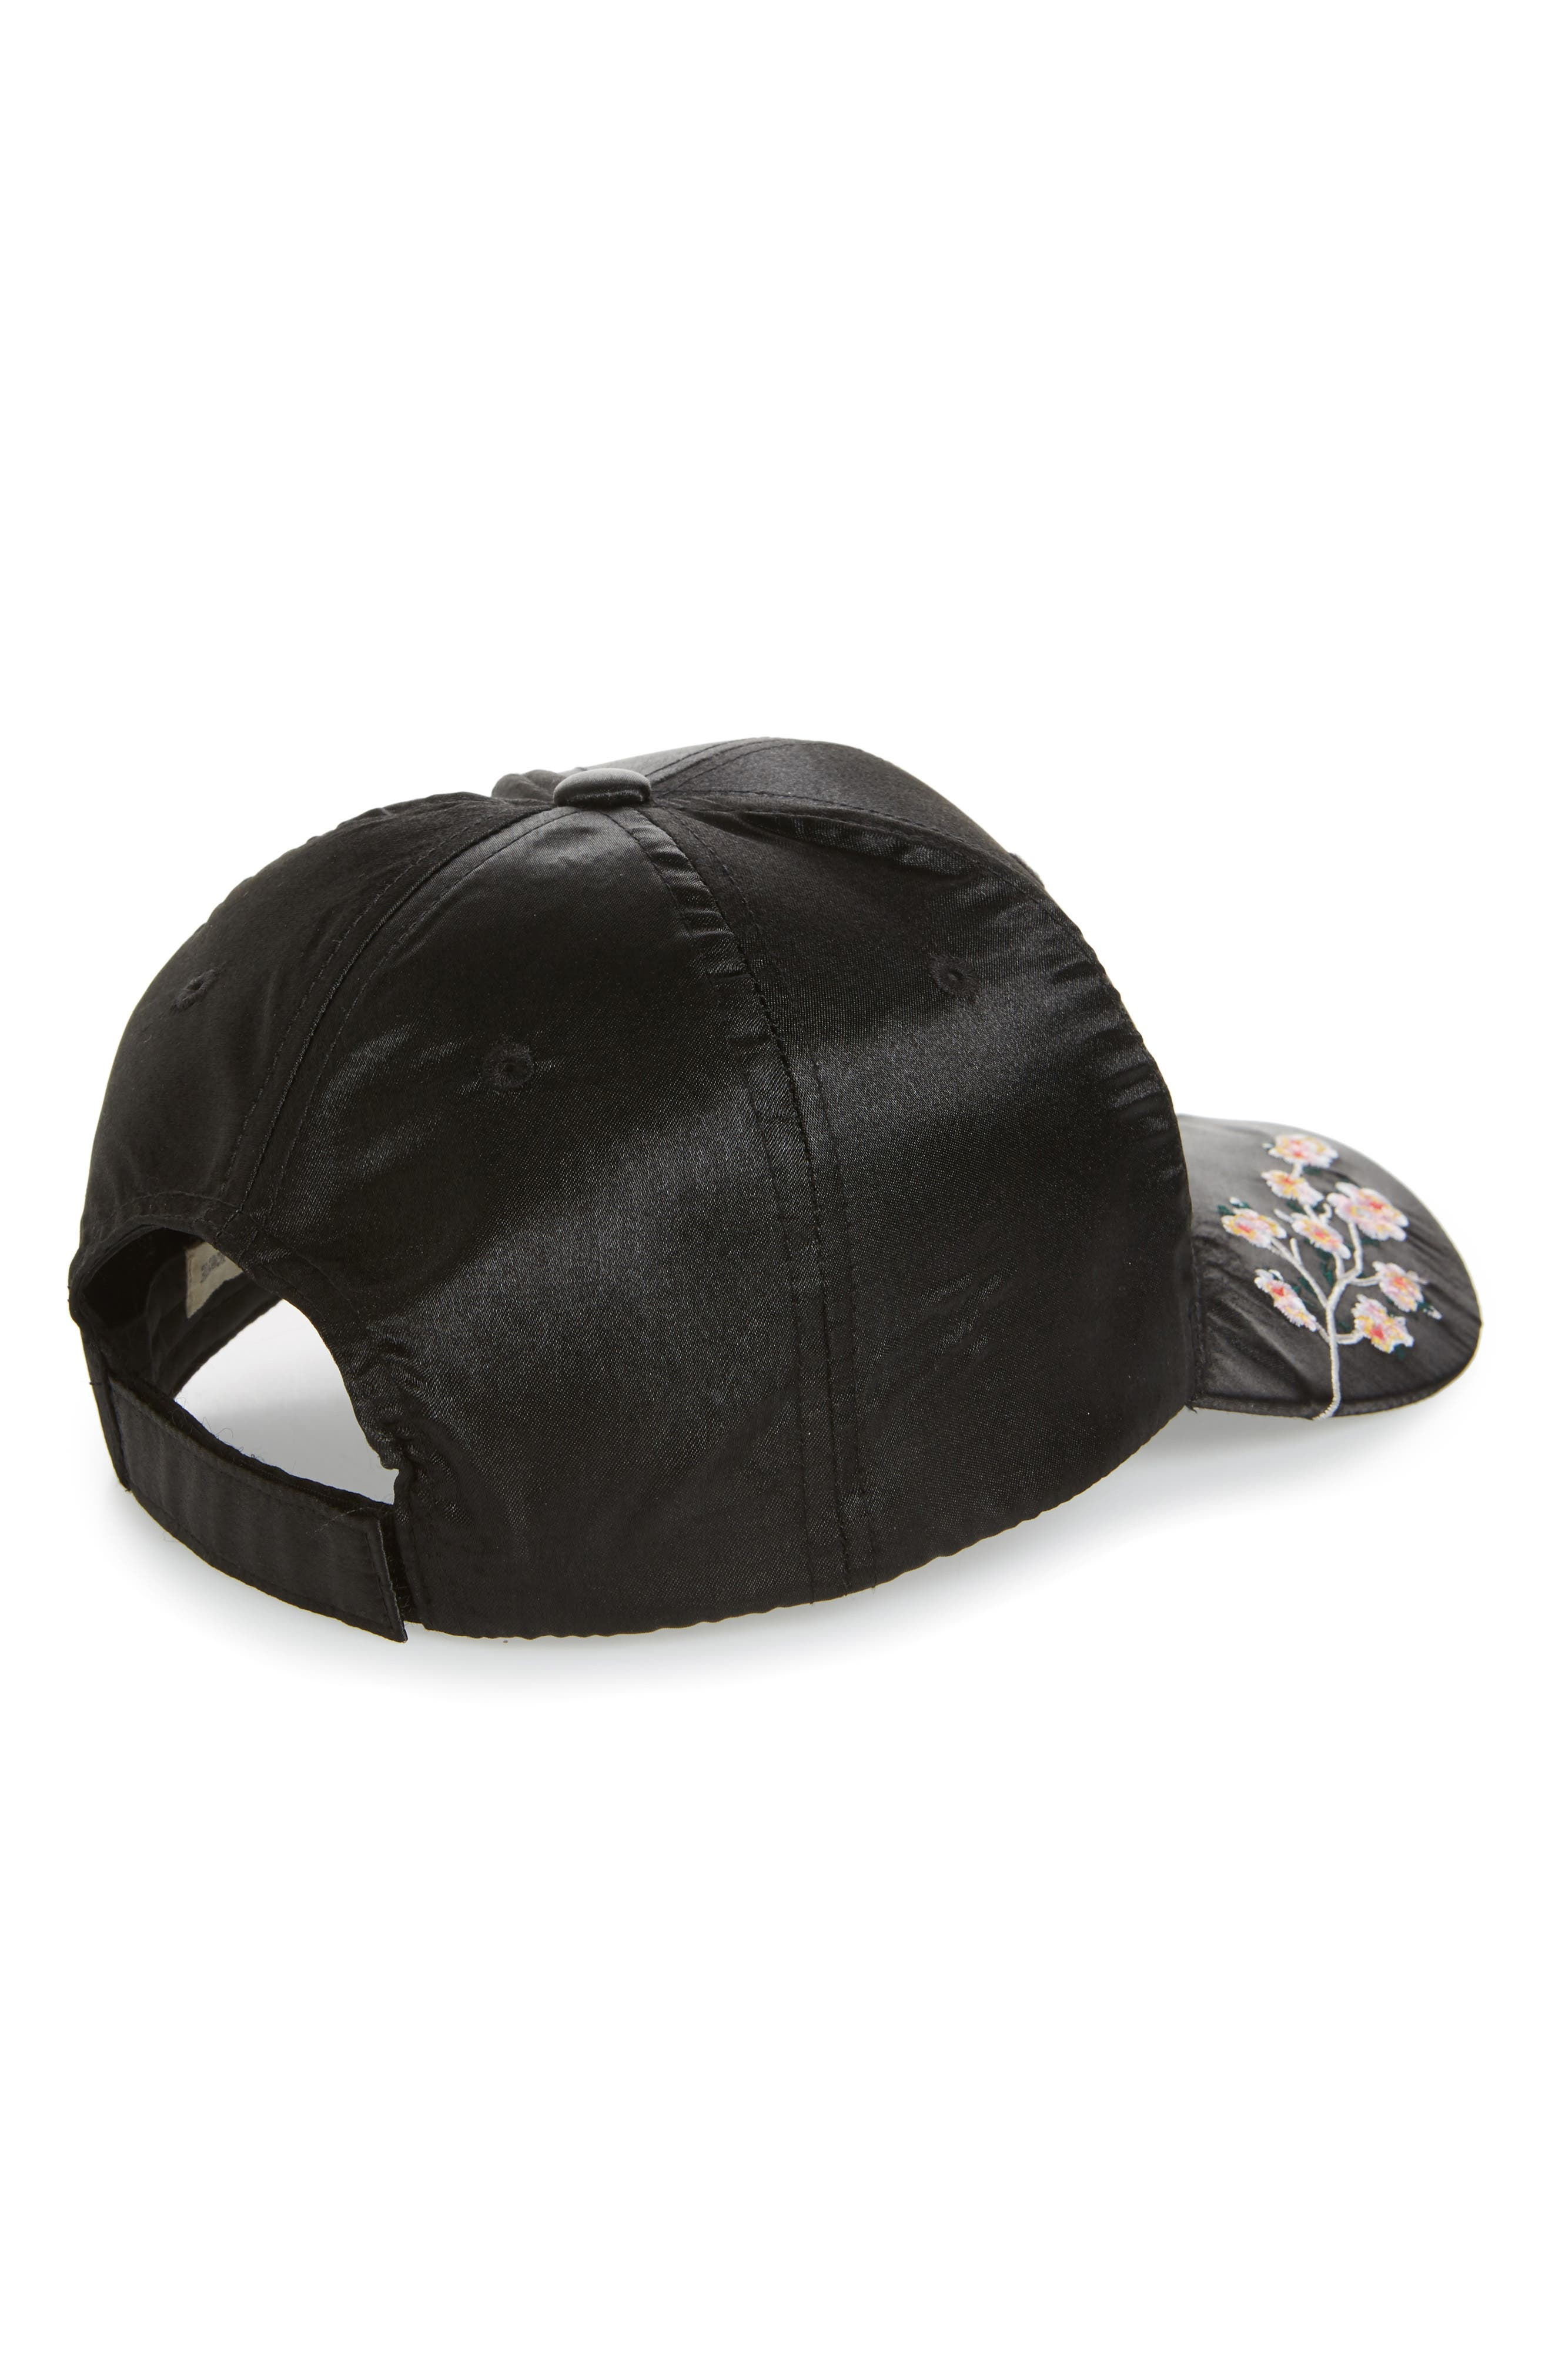 Embroidered Satin Adjustable Ball Cap,                             Alternate thumbnail 2, color,                             Black